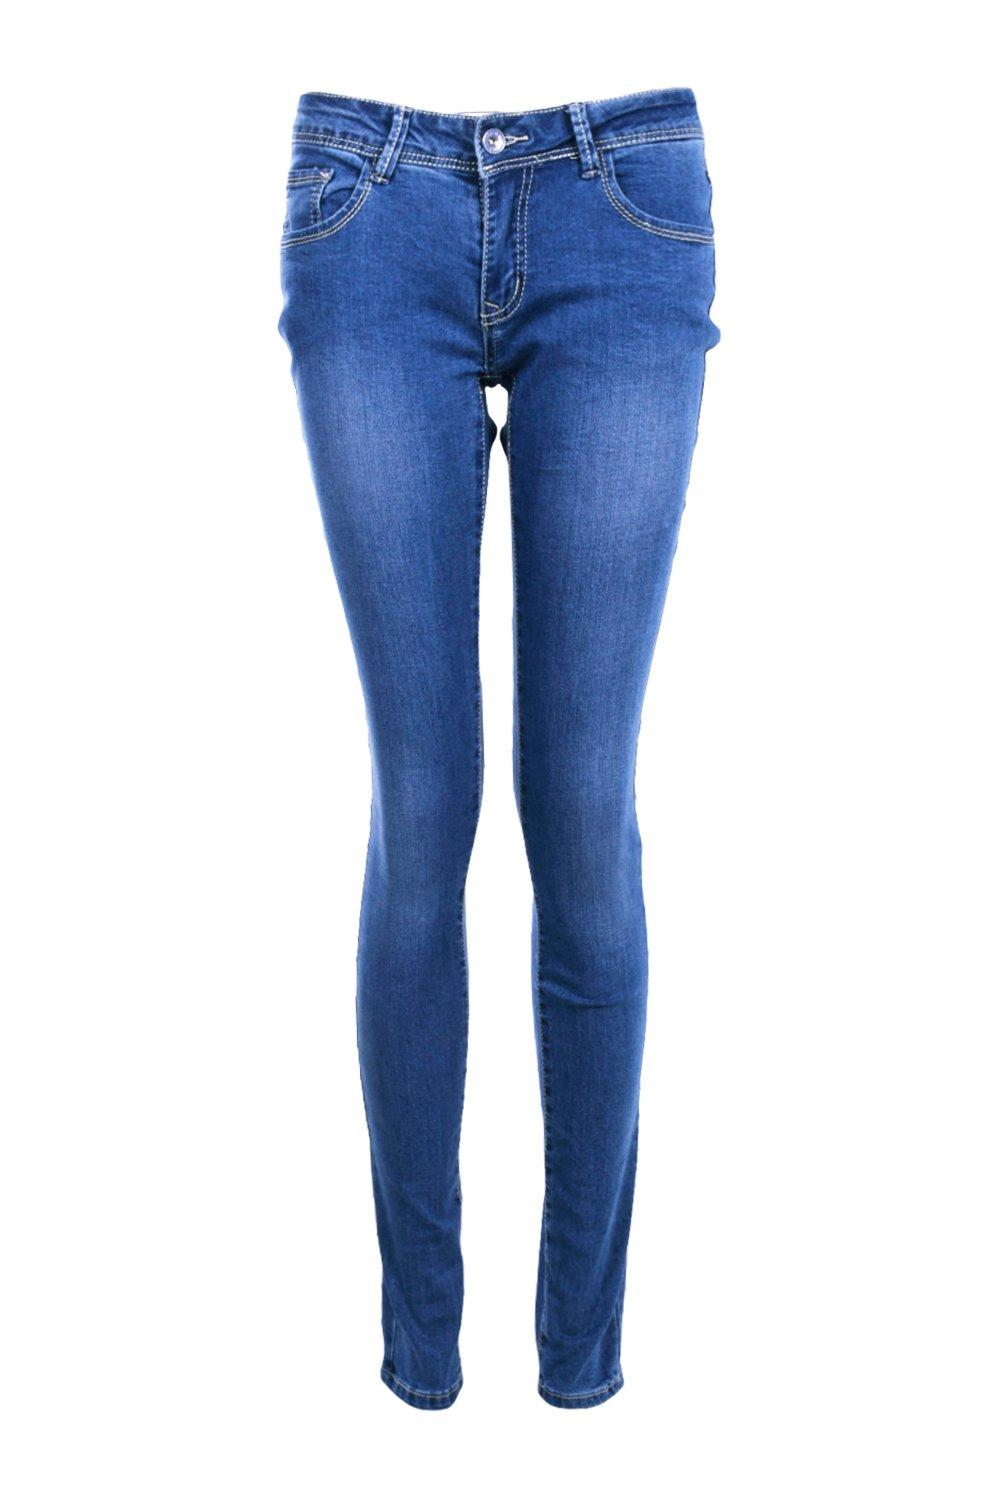 boohoo womens kellie low rise mid wash skinny jeans ebay. Black Bedroom Furniture Sets. Home Design Ideas